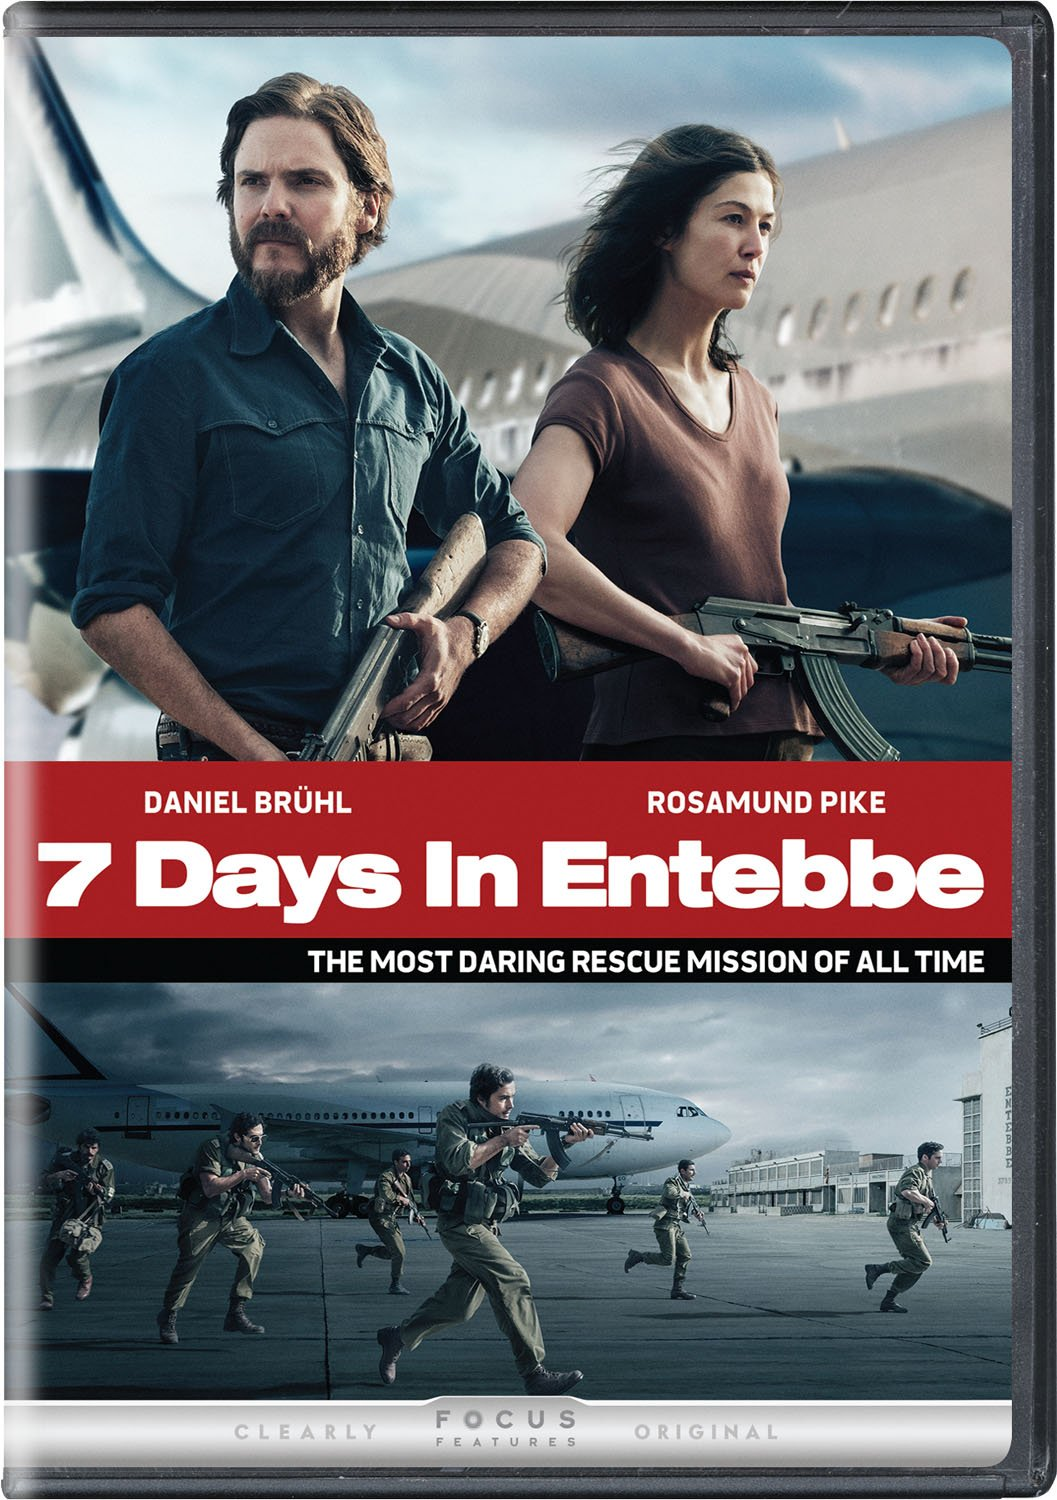 7 Days in Entebbe/Home media